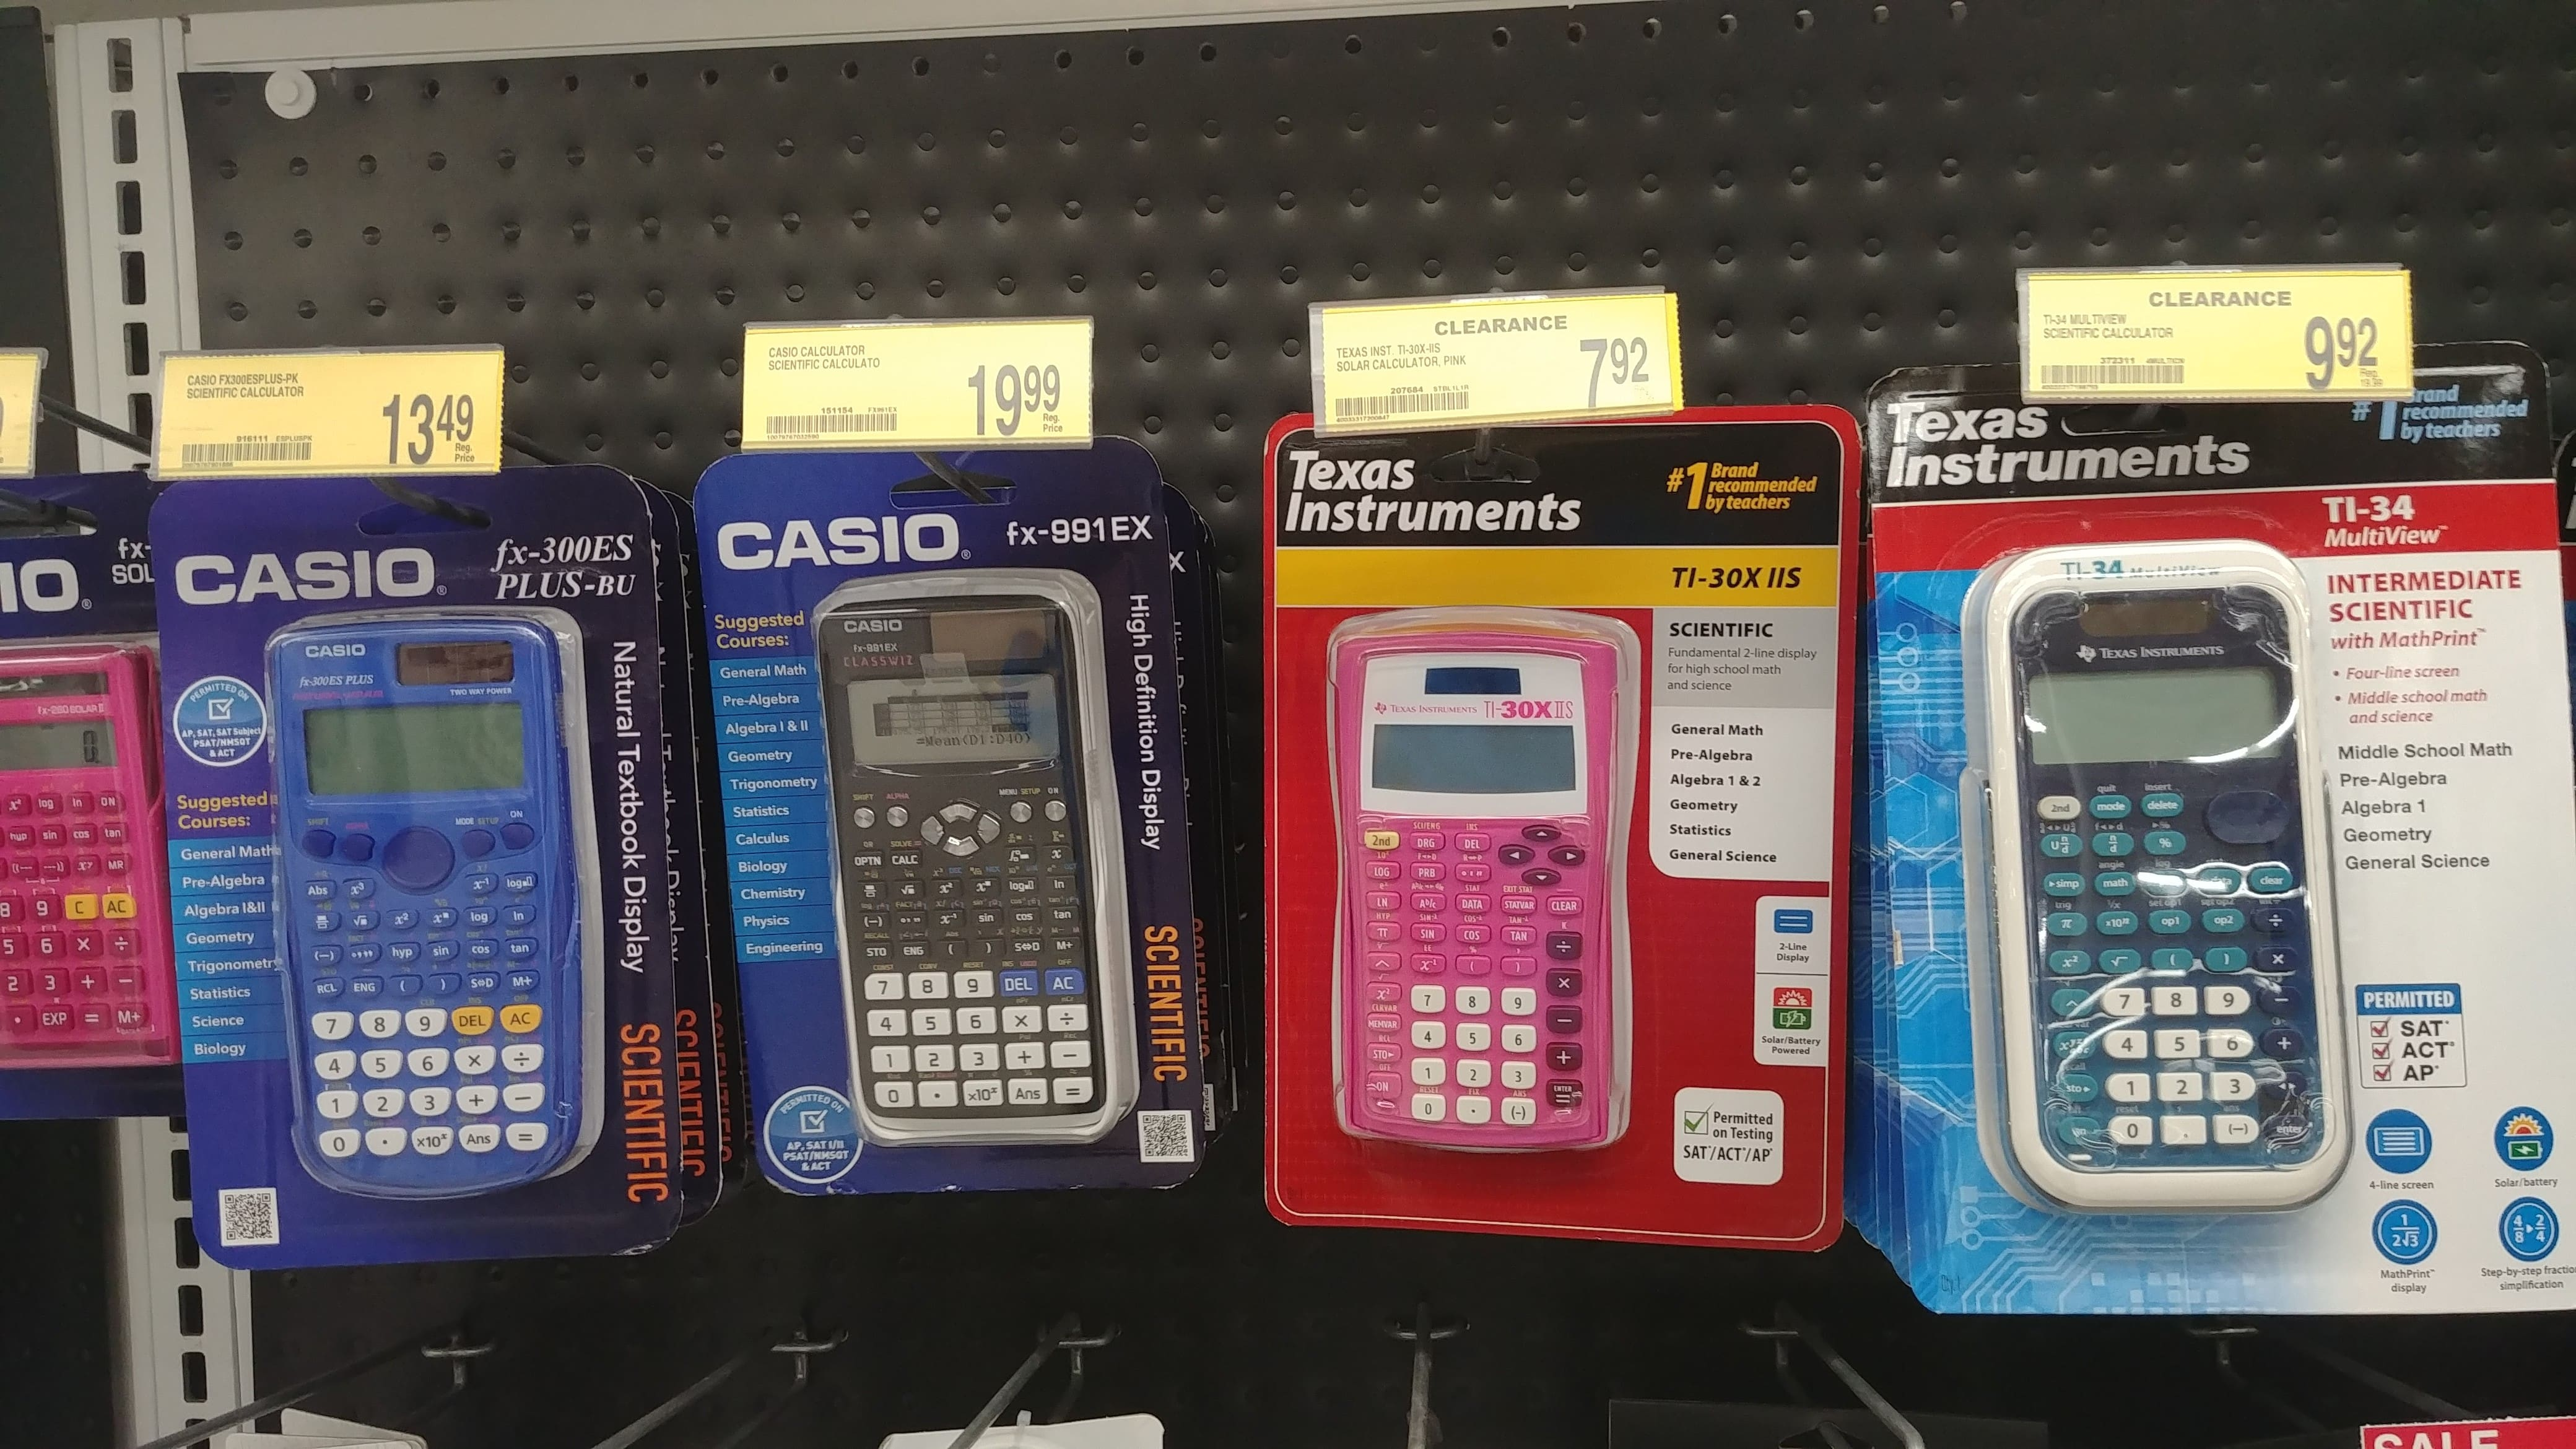 Clearance - Office Depot Fountain Valley, CA - Scientific Calculators $7.92